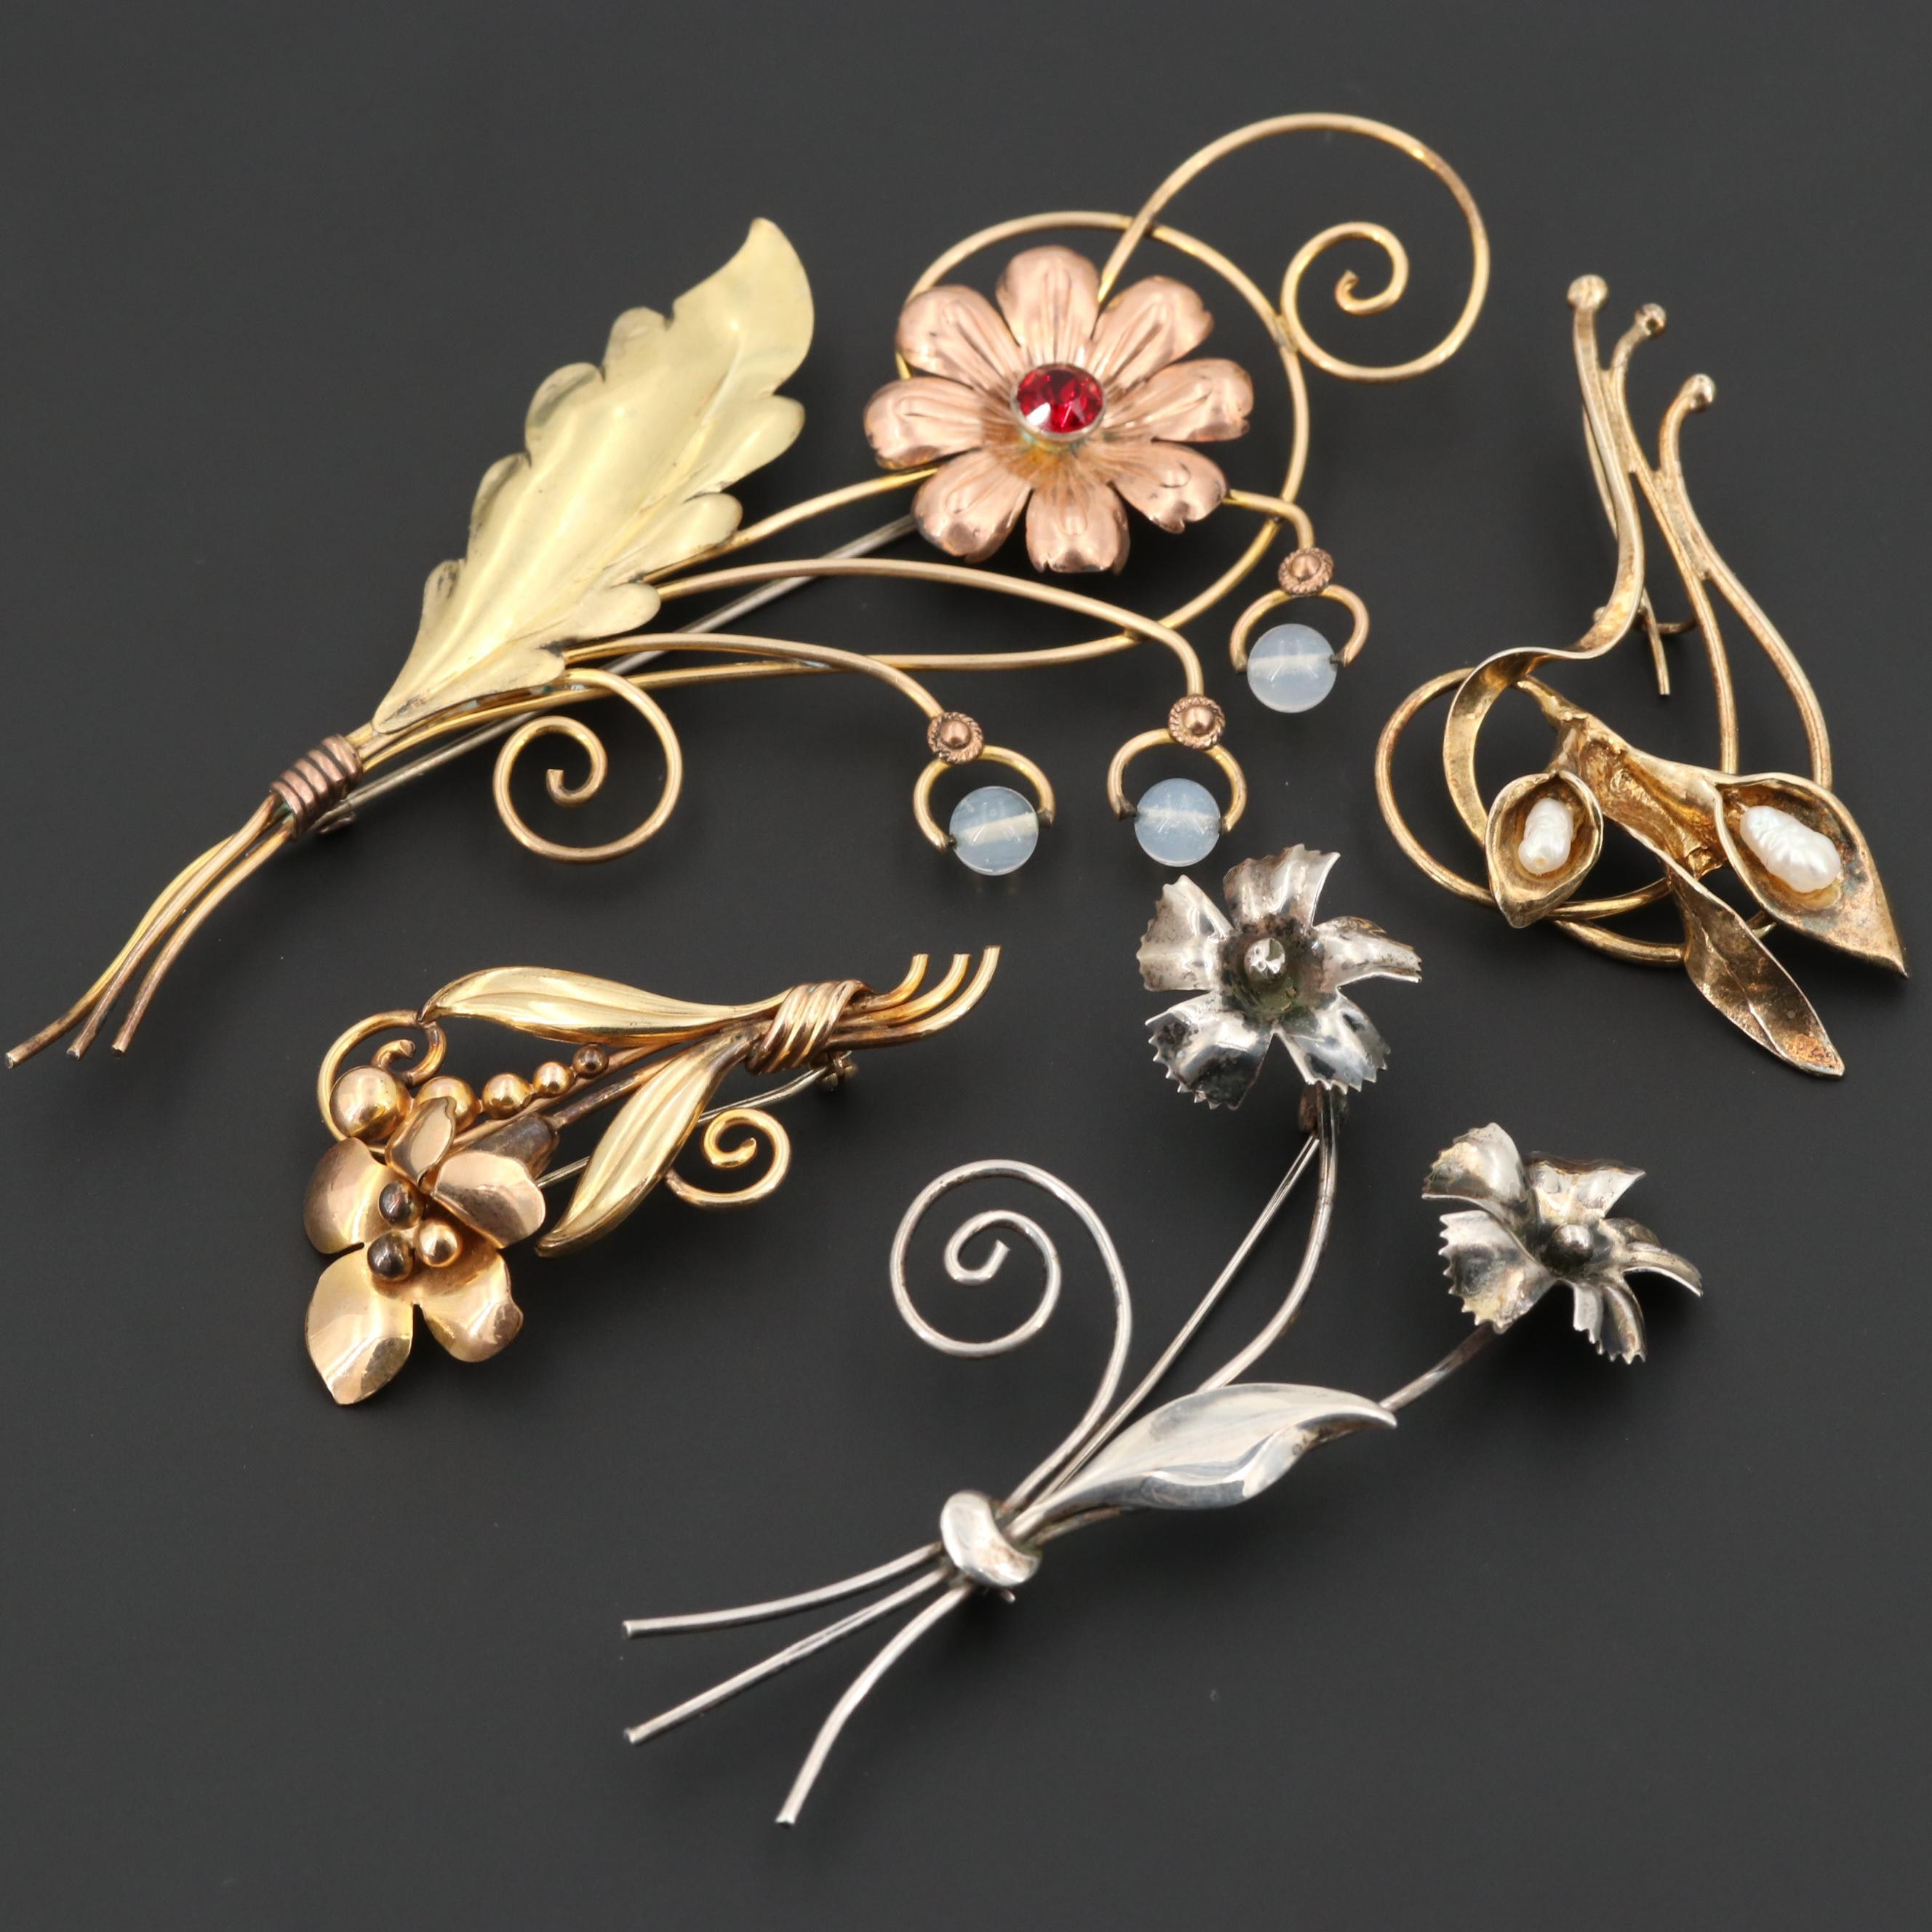 Sterling and Gold Filled Cultured Pearl Brooches Featuring CarlArt and Van Dell